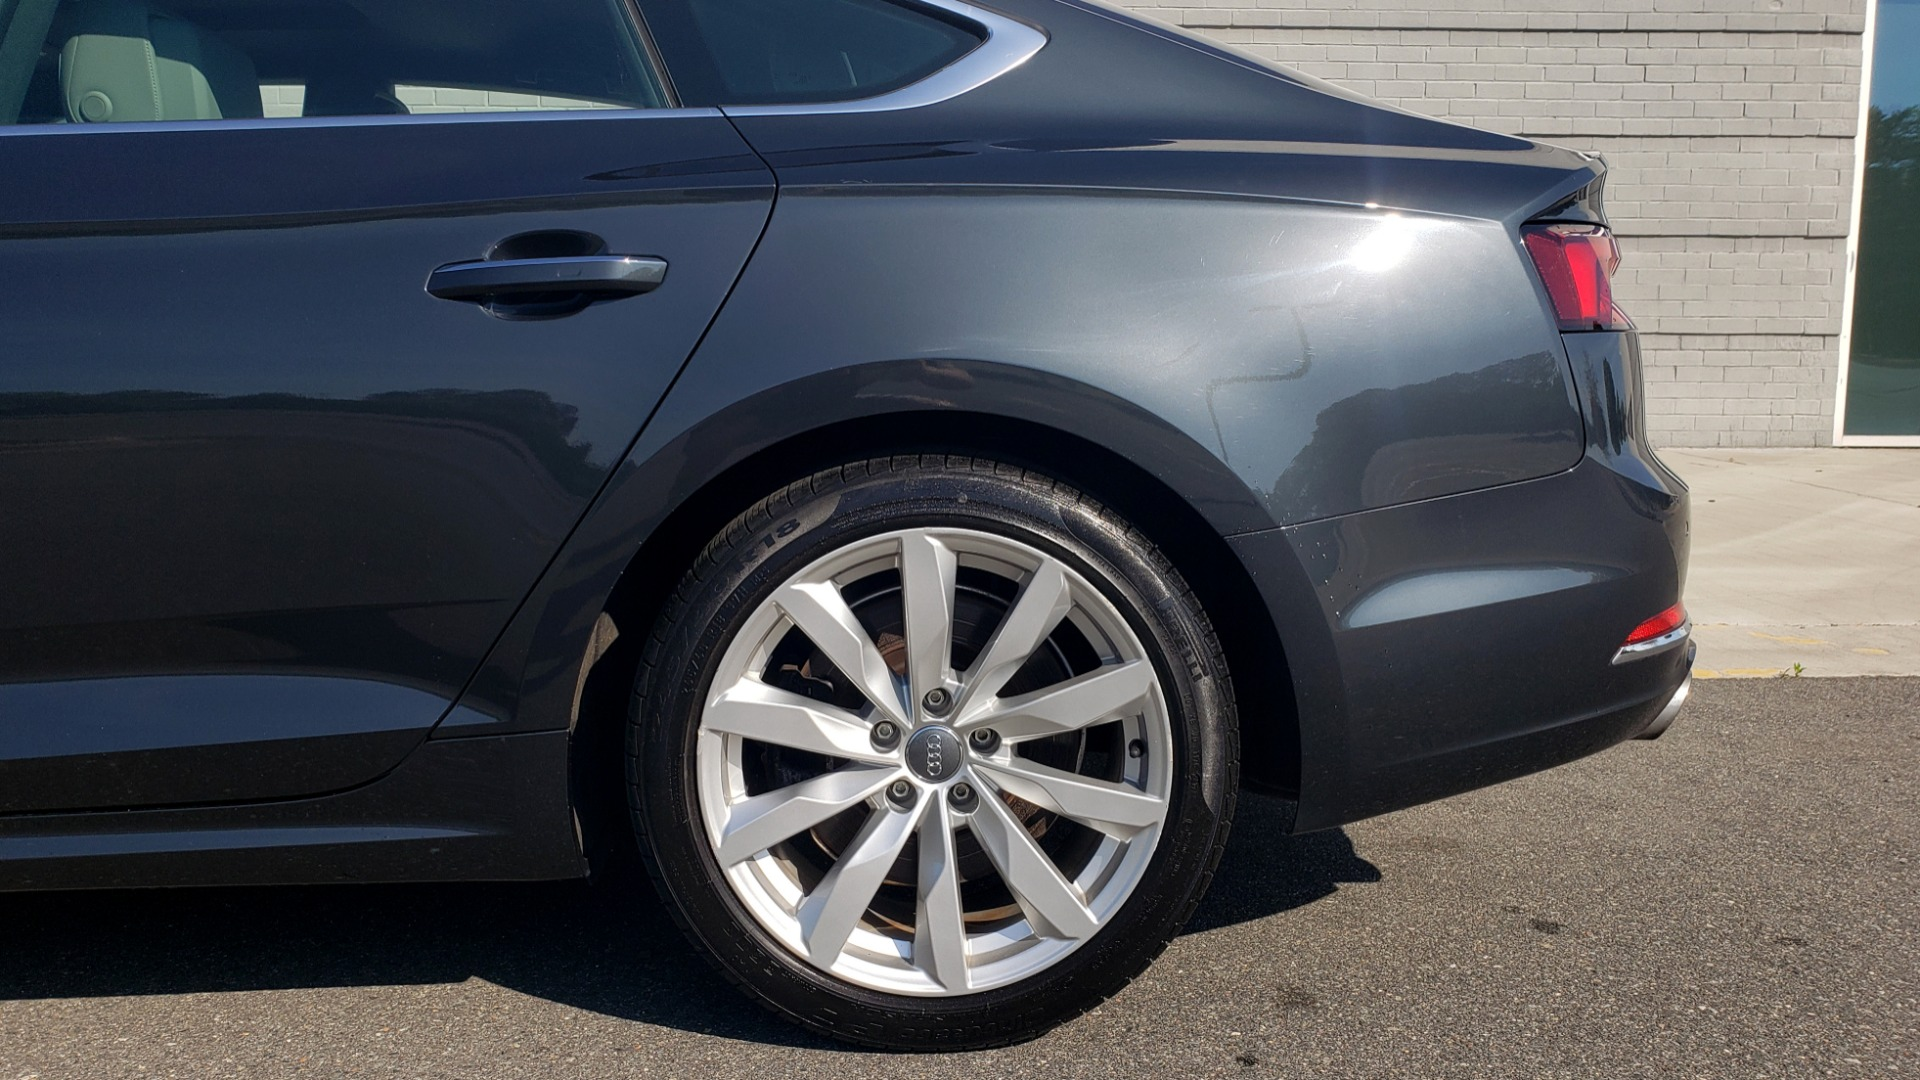 Used 2018 Audi A5 SPORTBACK PREMIUM PLUS 2.0T / AWD / NAV / B&O SND / SUNROOF / REARVIEW for sale Sold at Formula Imports in Charlotte NC 28227 9